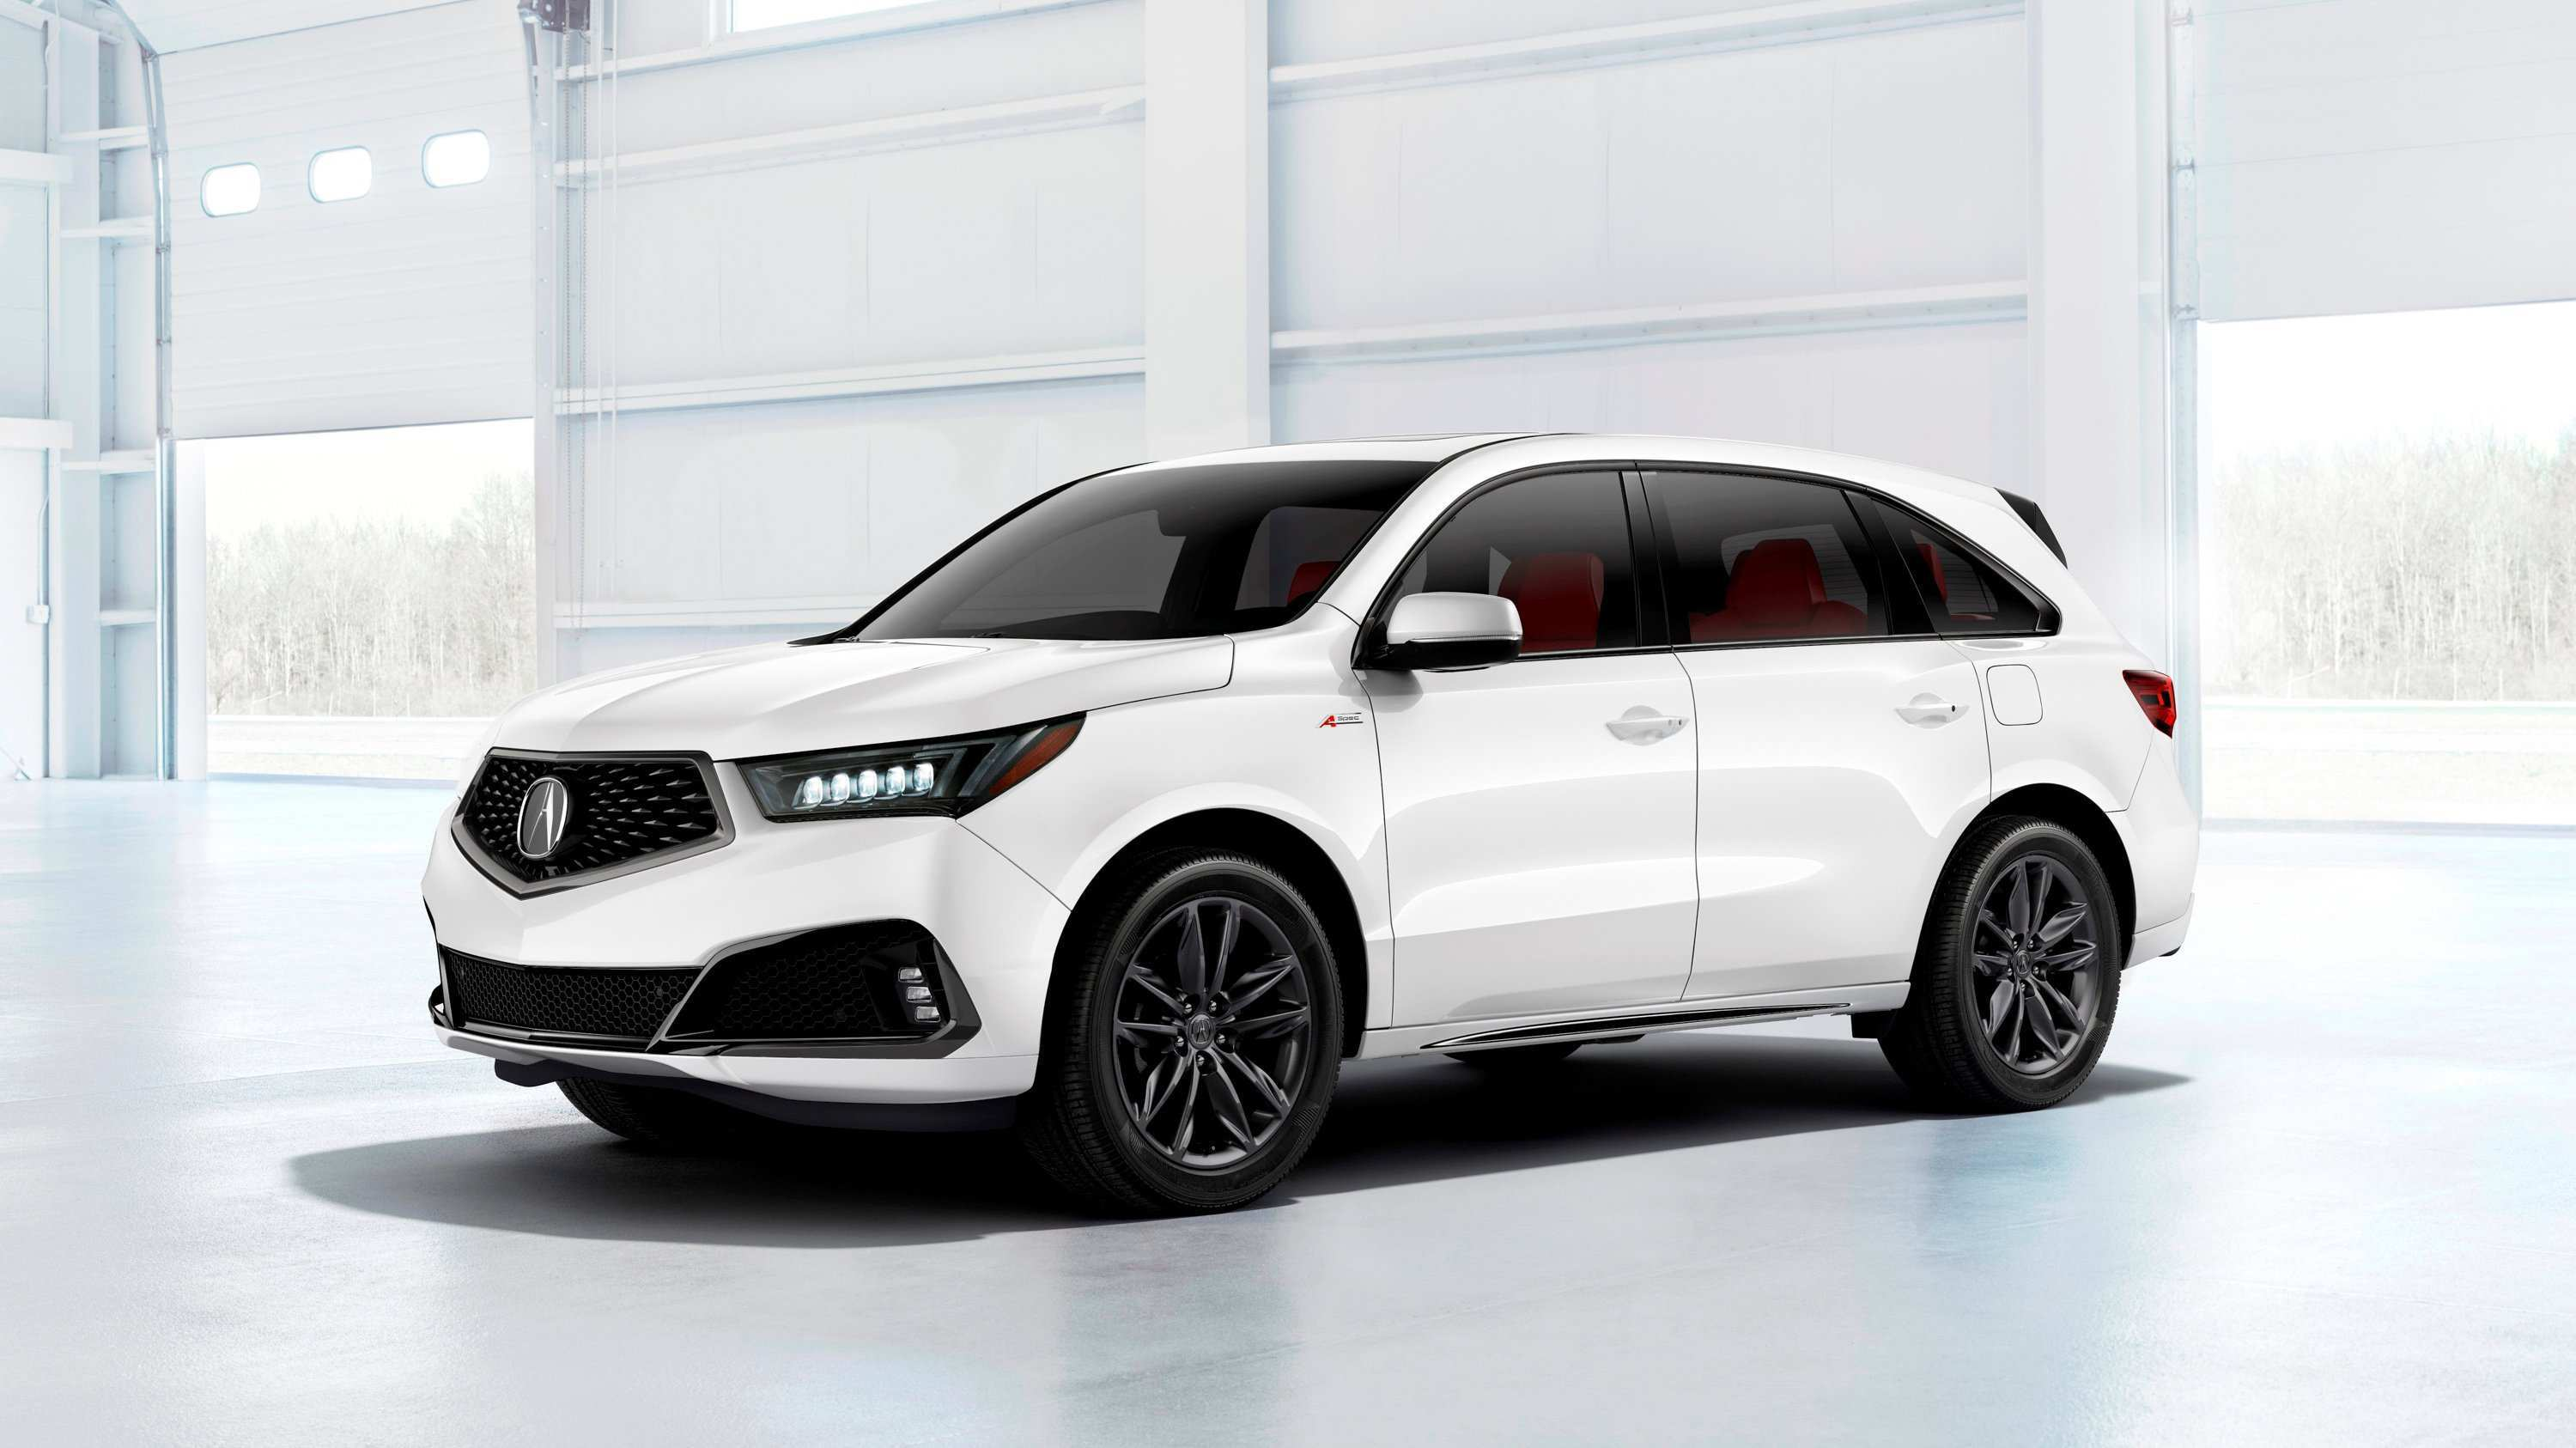 87 Great When Do 2020 Acura Cars Come Out Specs and Review by When Do 2020 Acura Cars Come Out